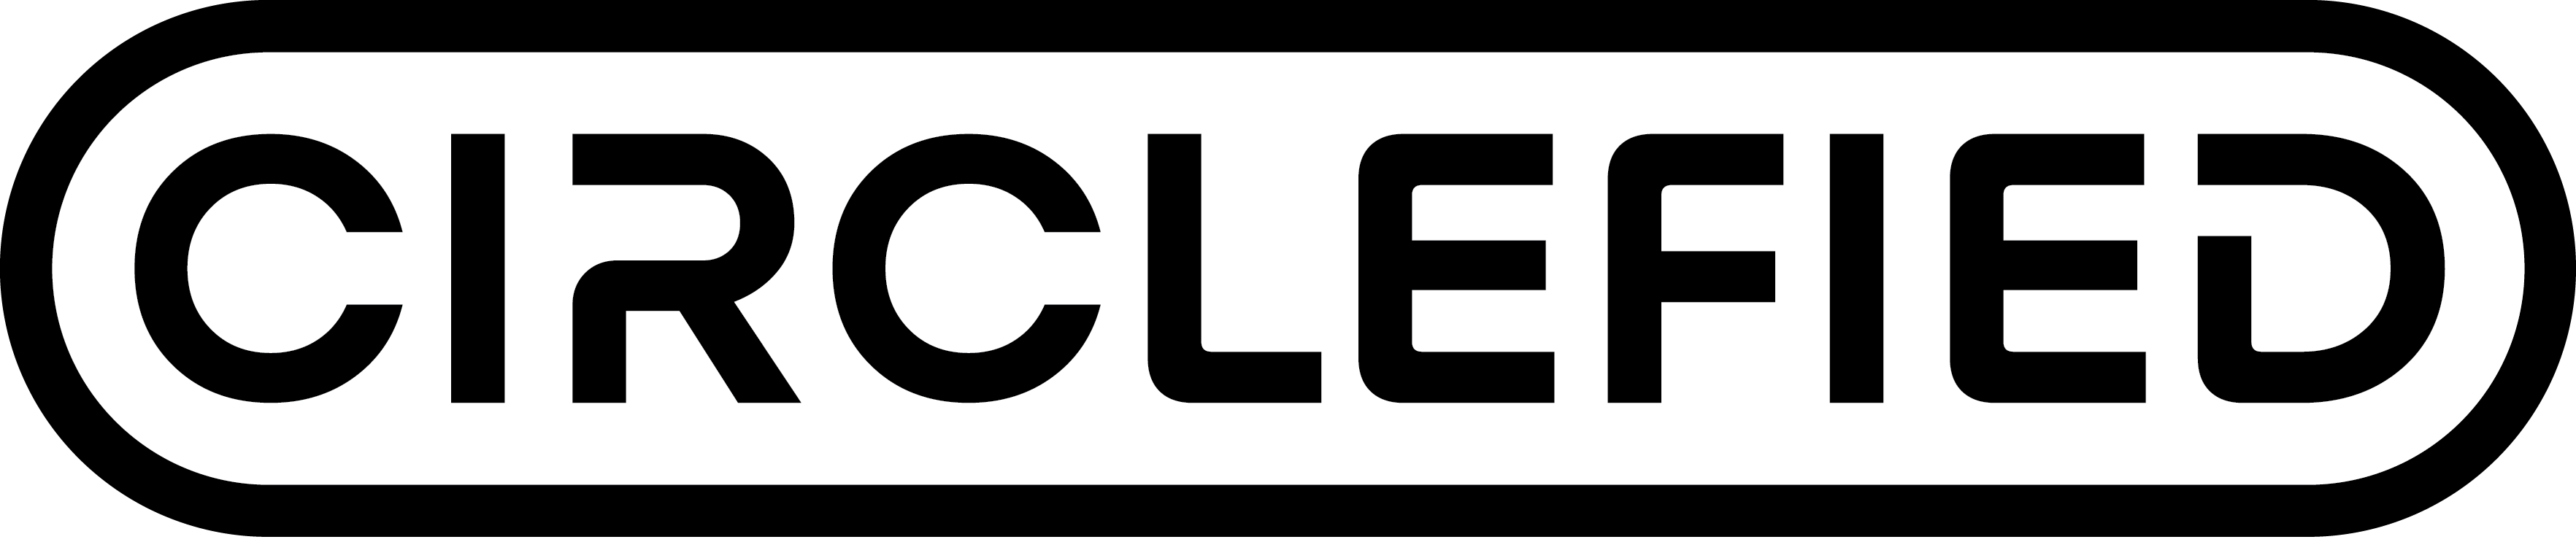 Circlefied logo